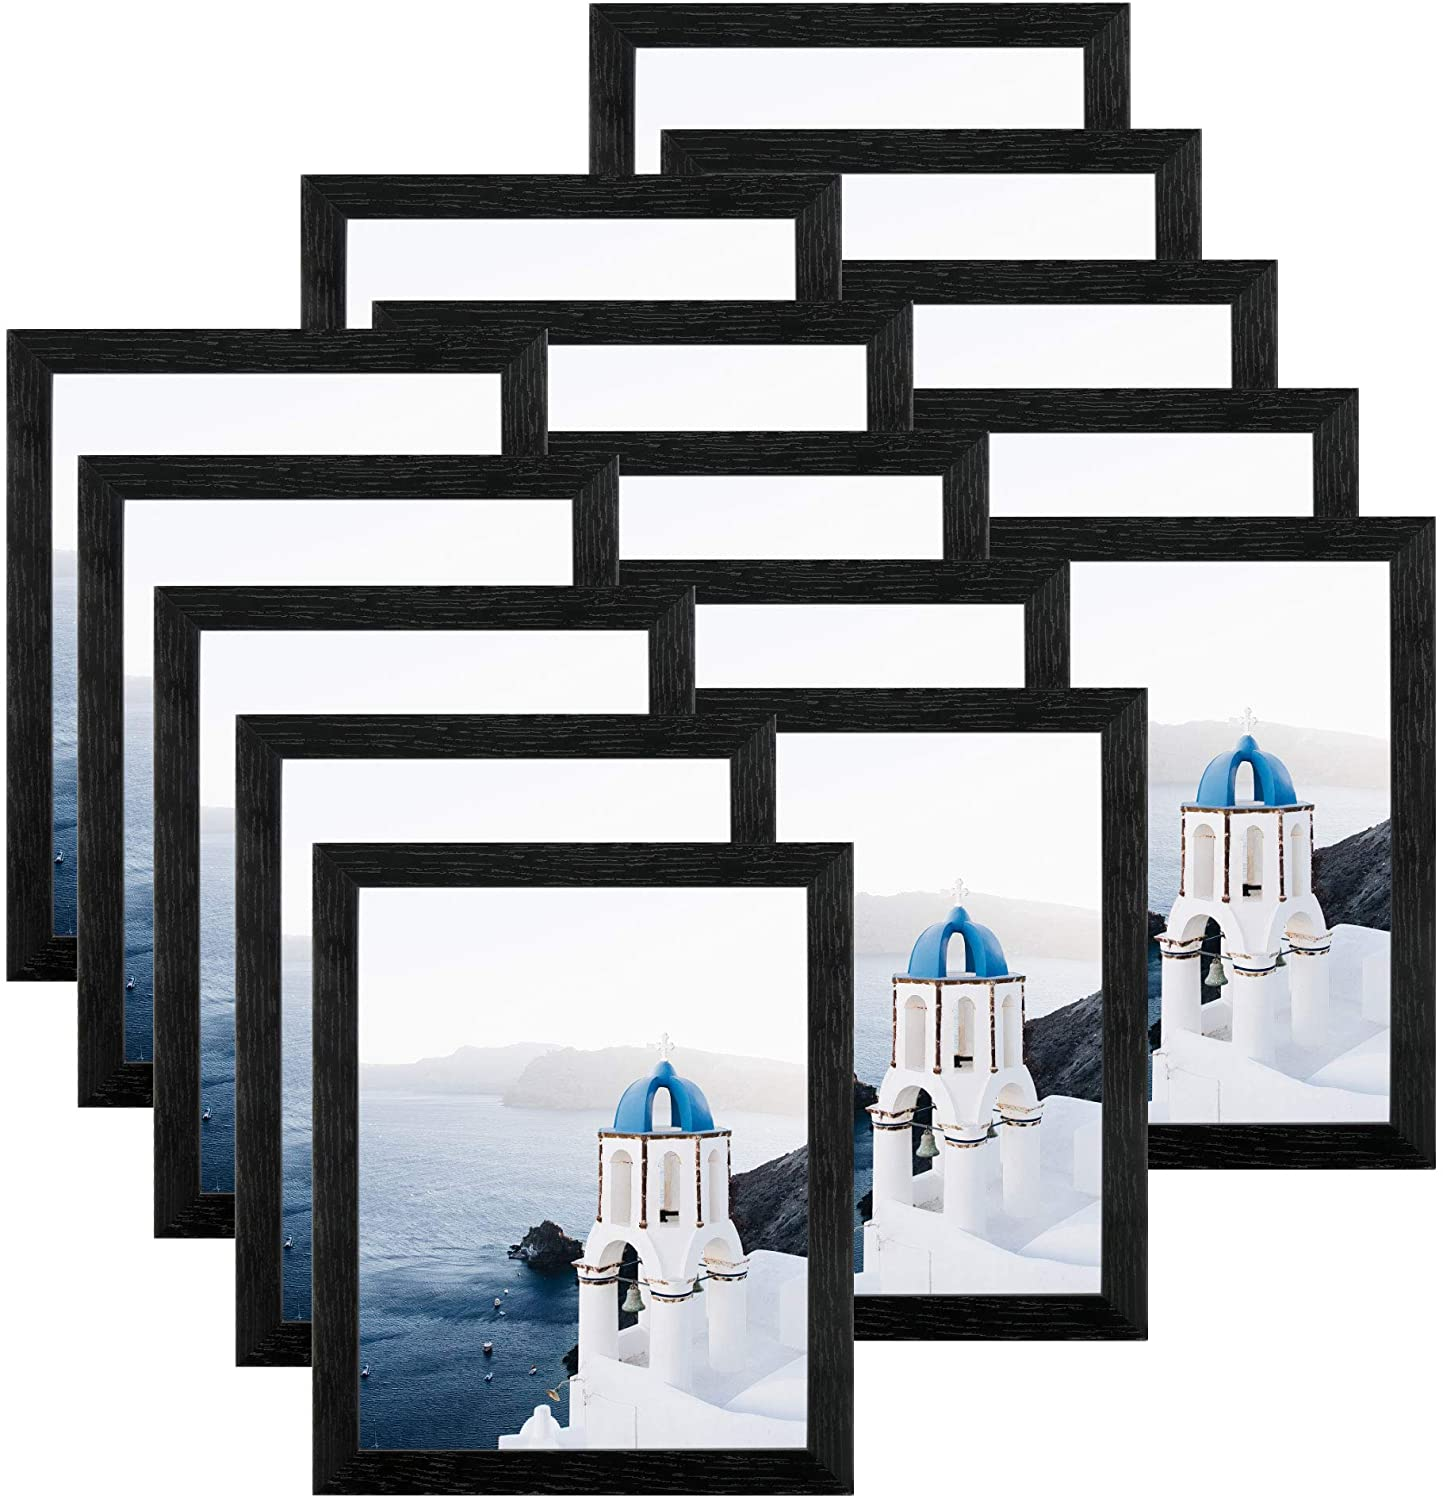 FRAME YI 15 Pack 8x10 Black Picture Frames - Wall Display - Tabletop Display - Hanging Hardware - Easel Backs Included